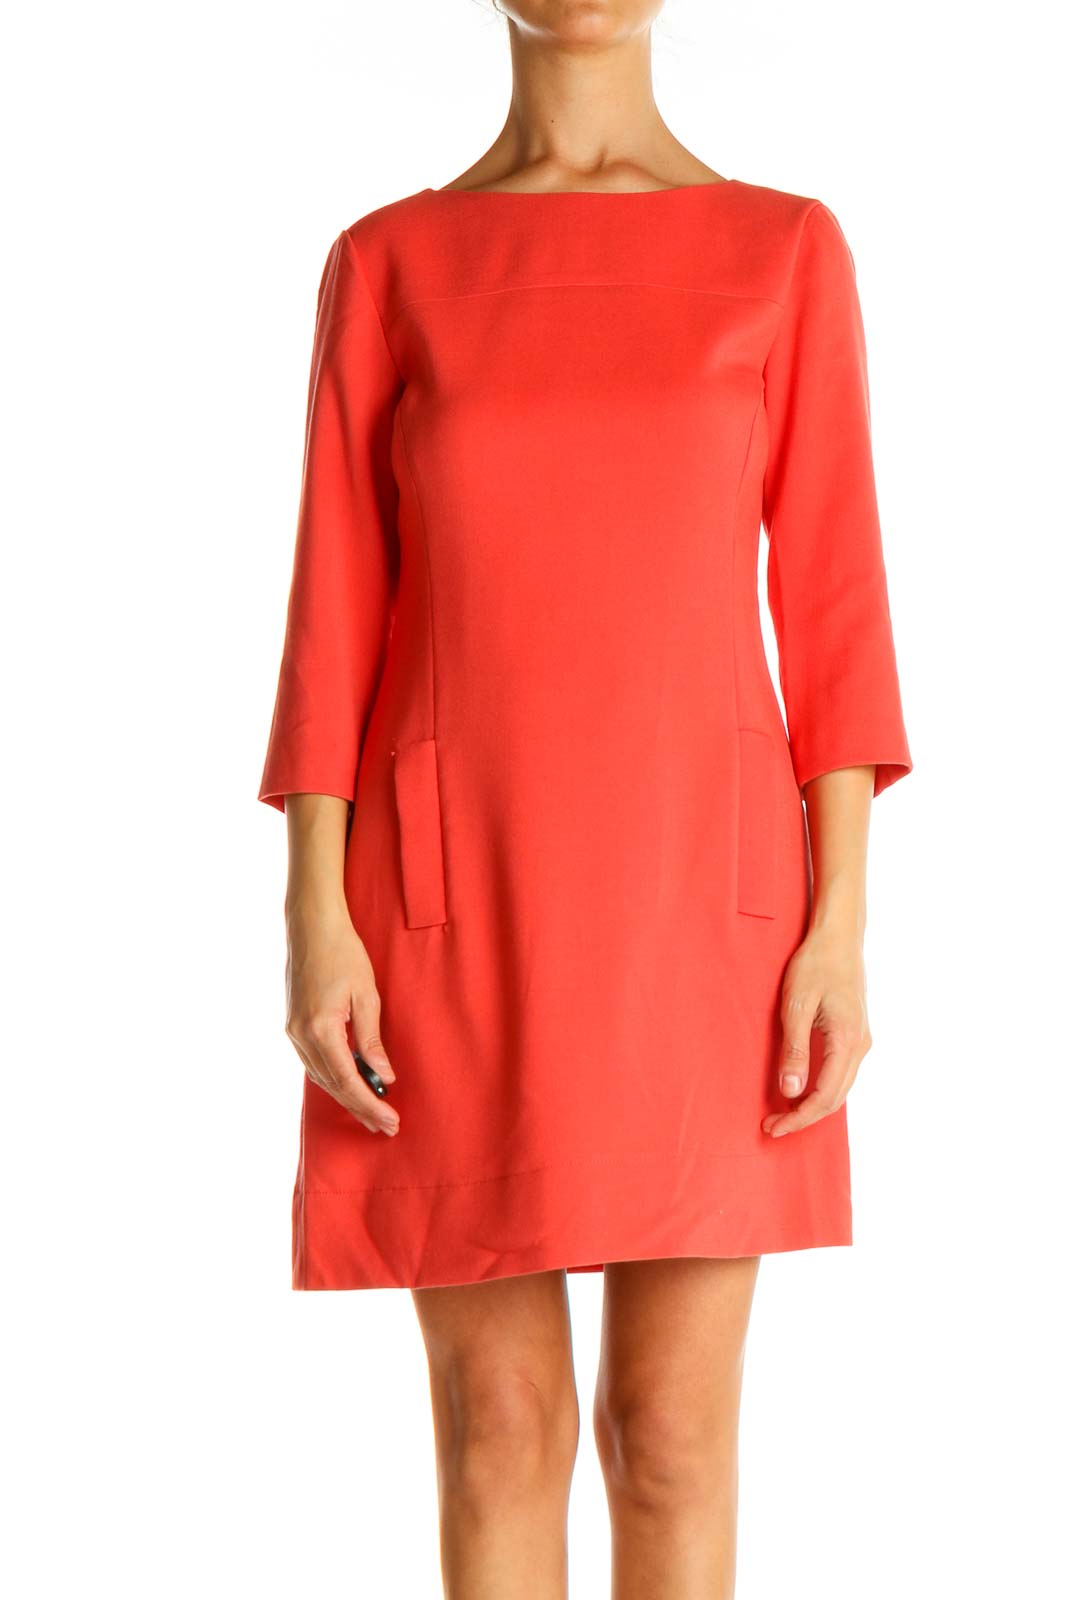 Red Solid Classic Fit & Flare Dress Front